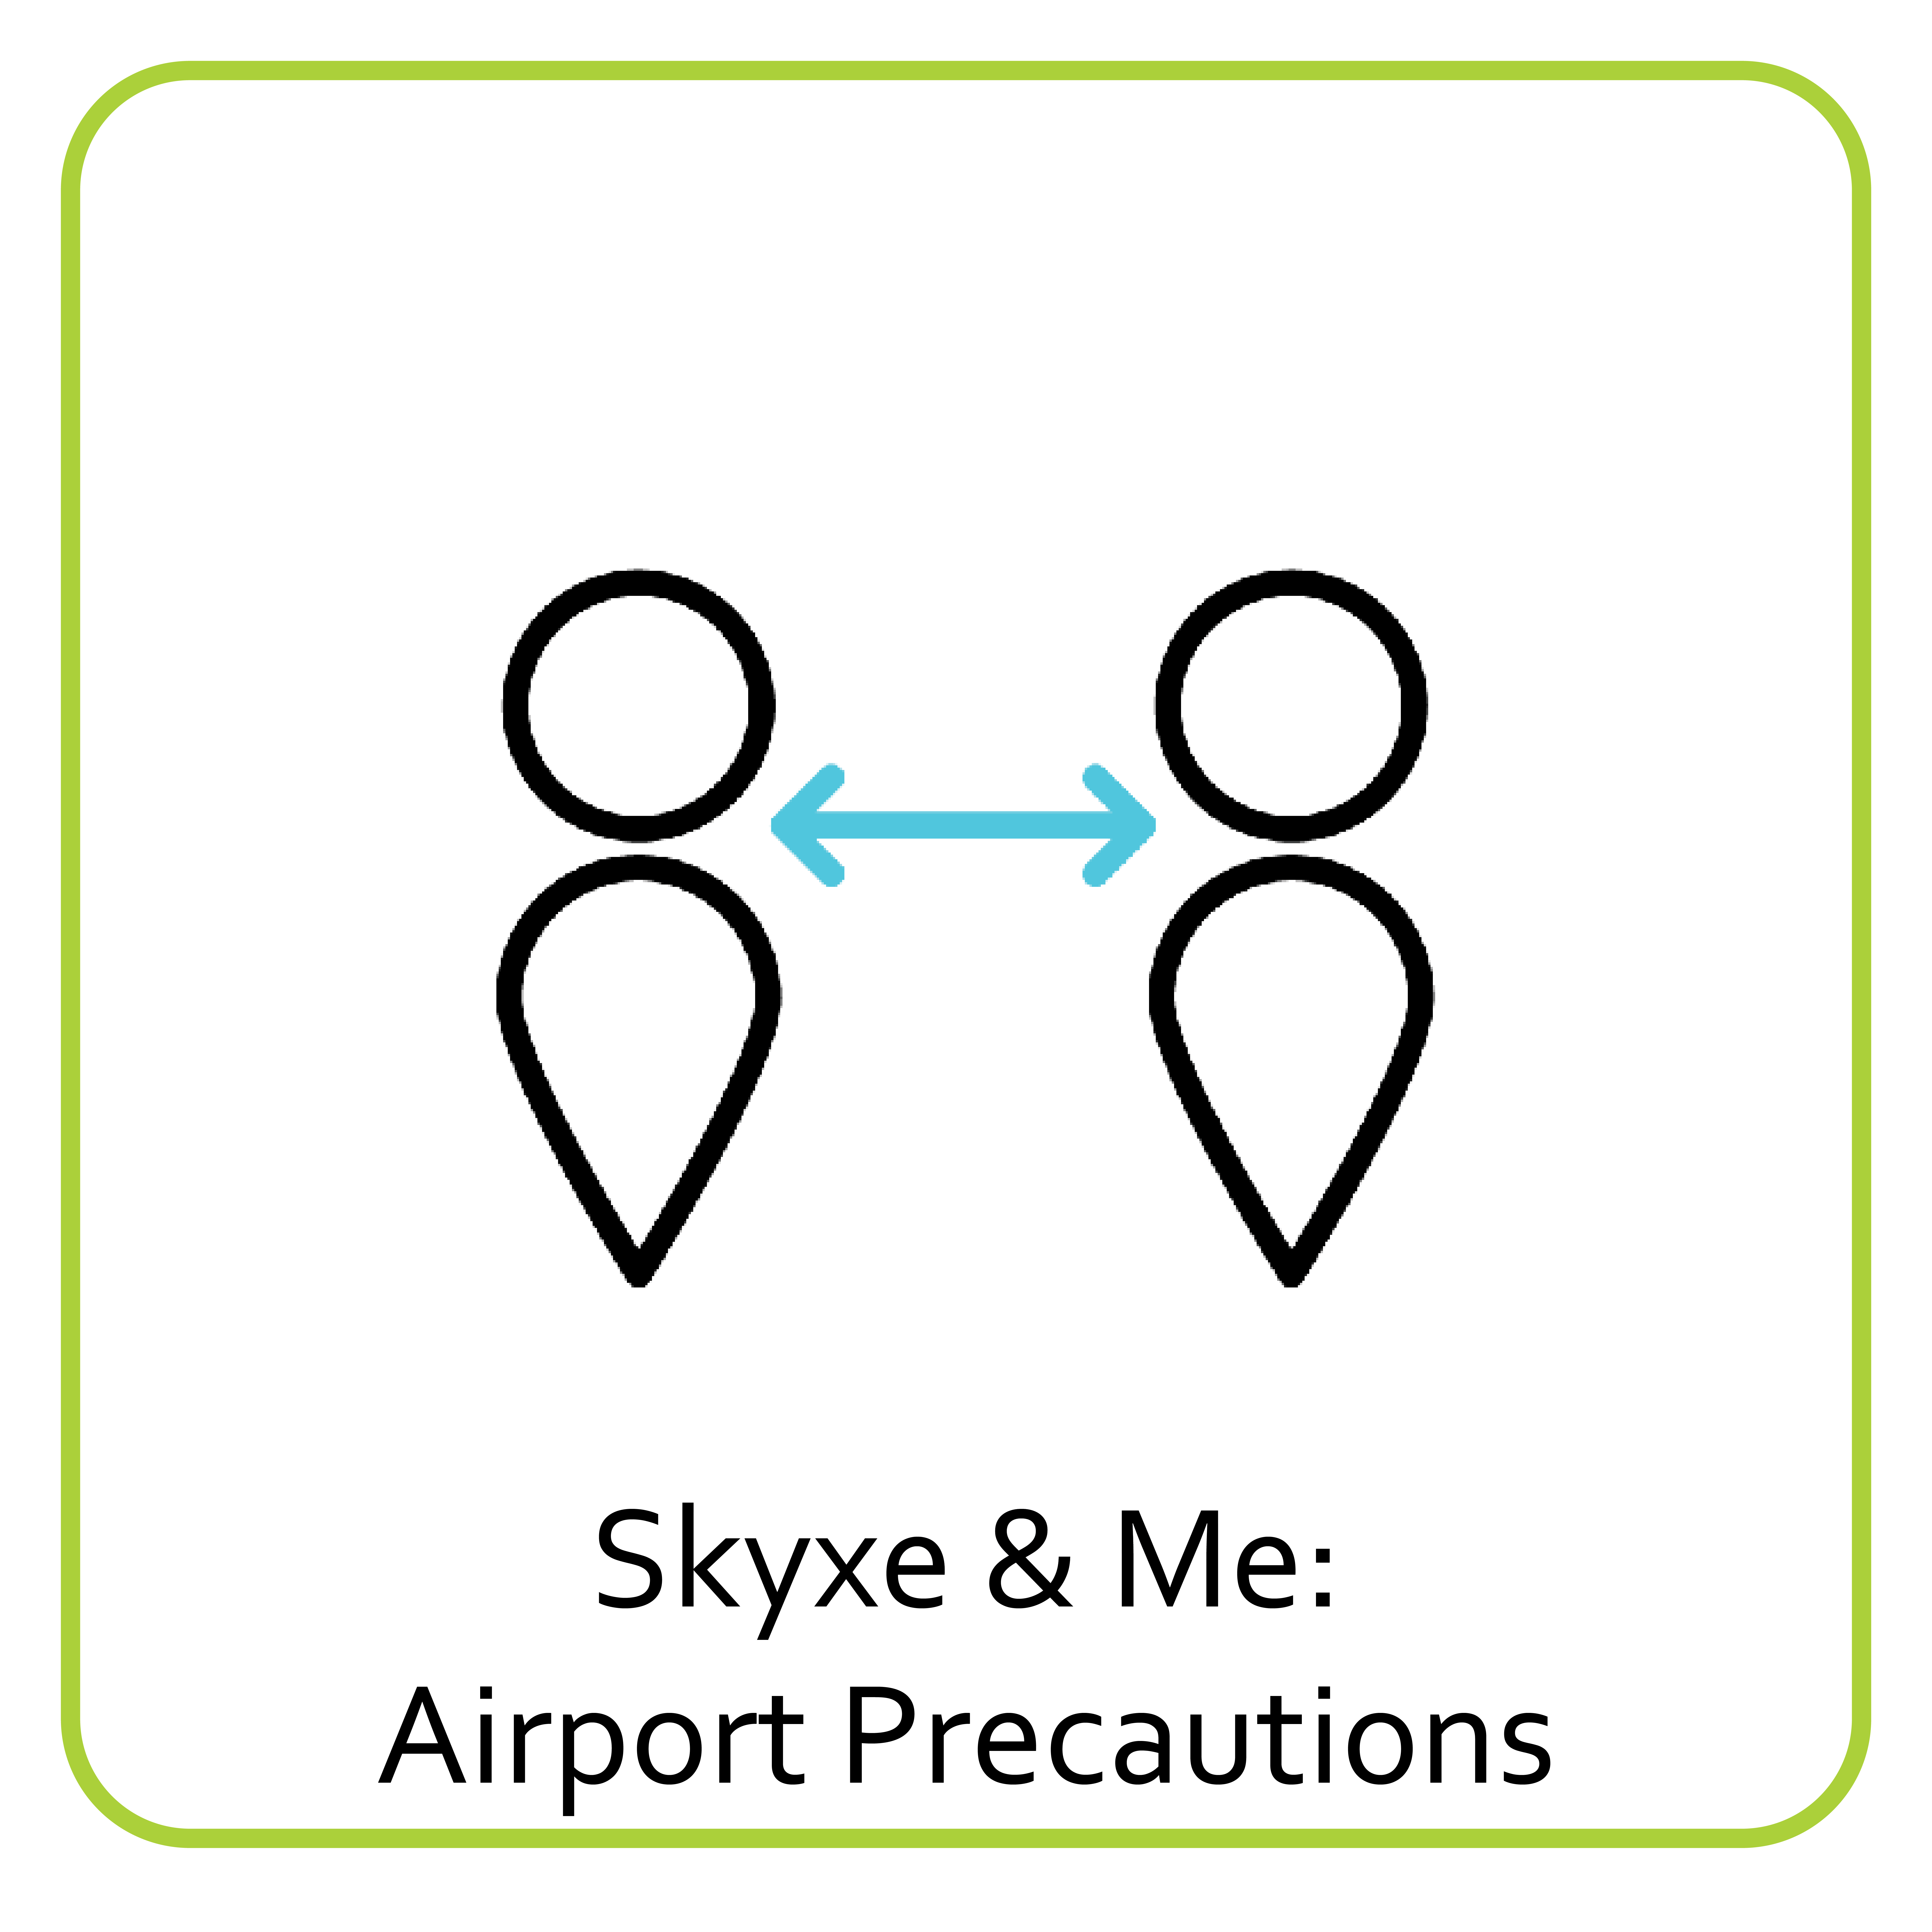 Information on Skyxe precautions